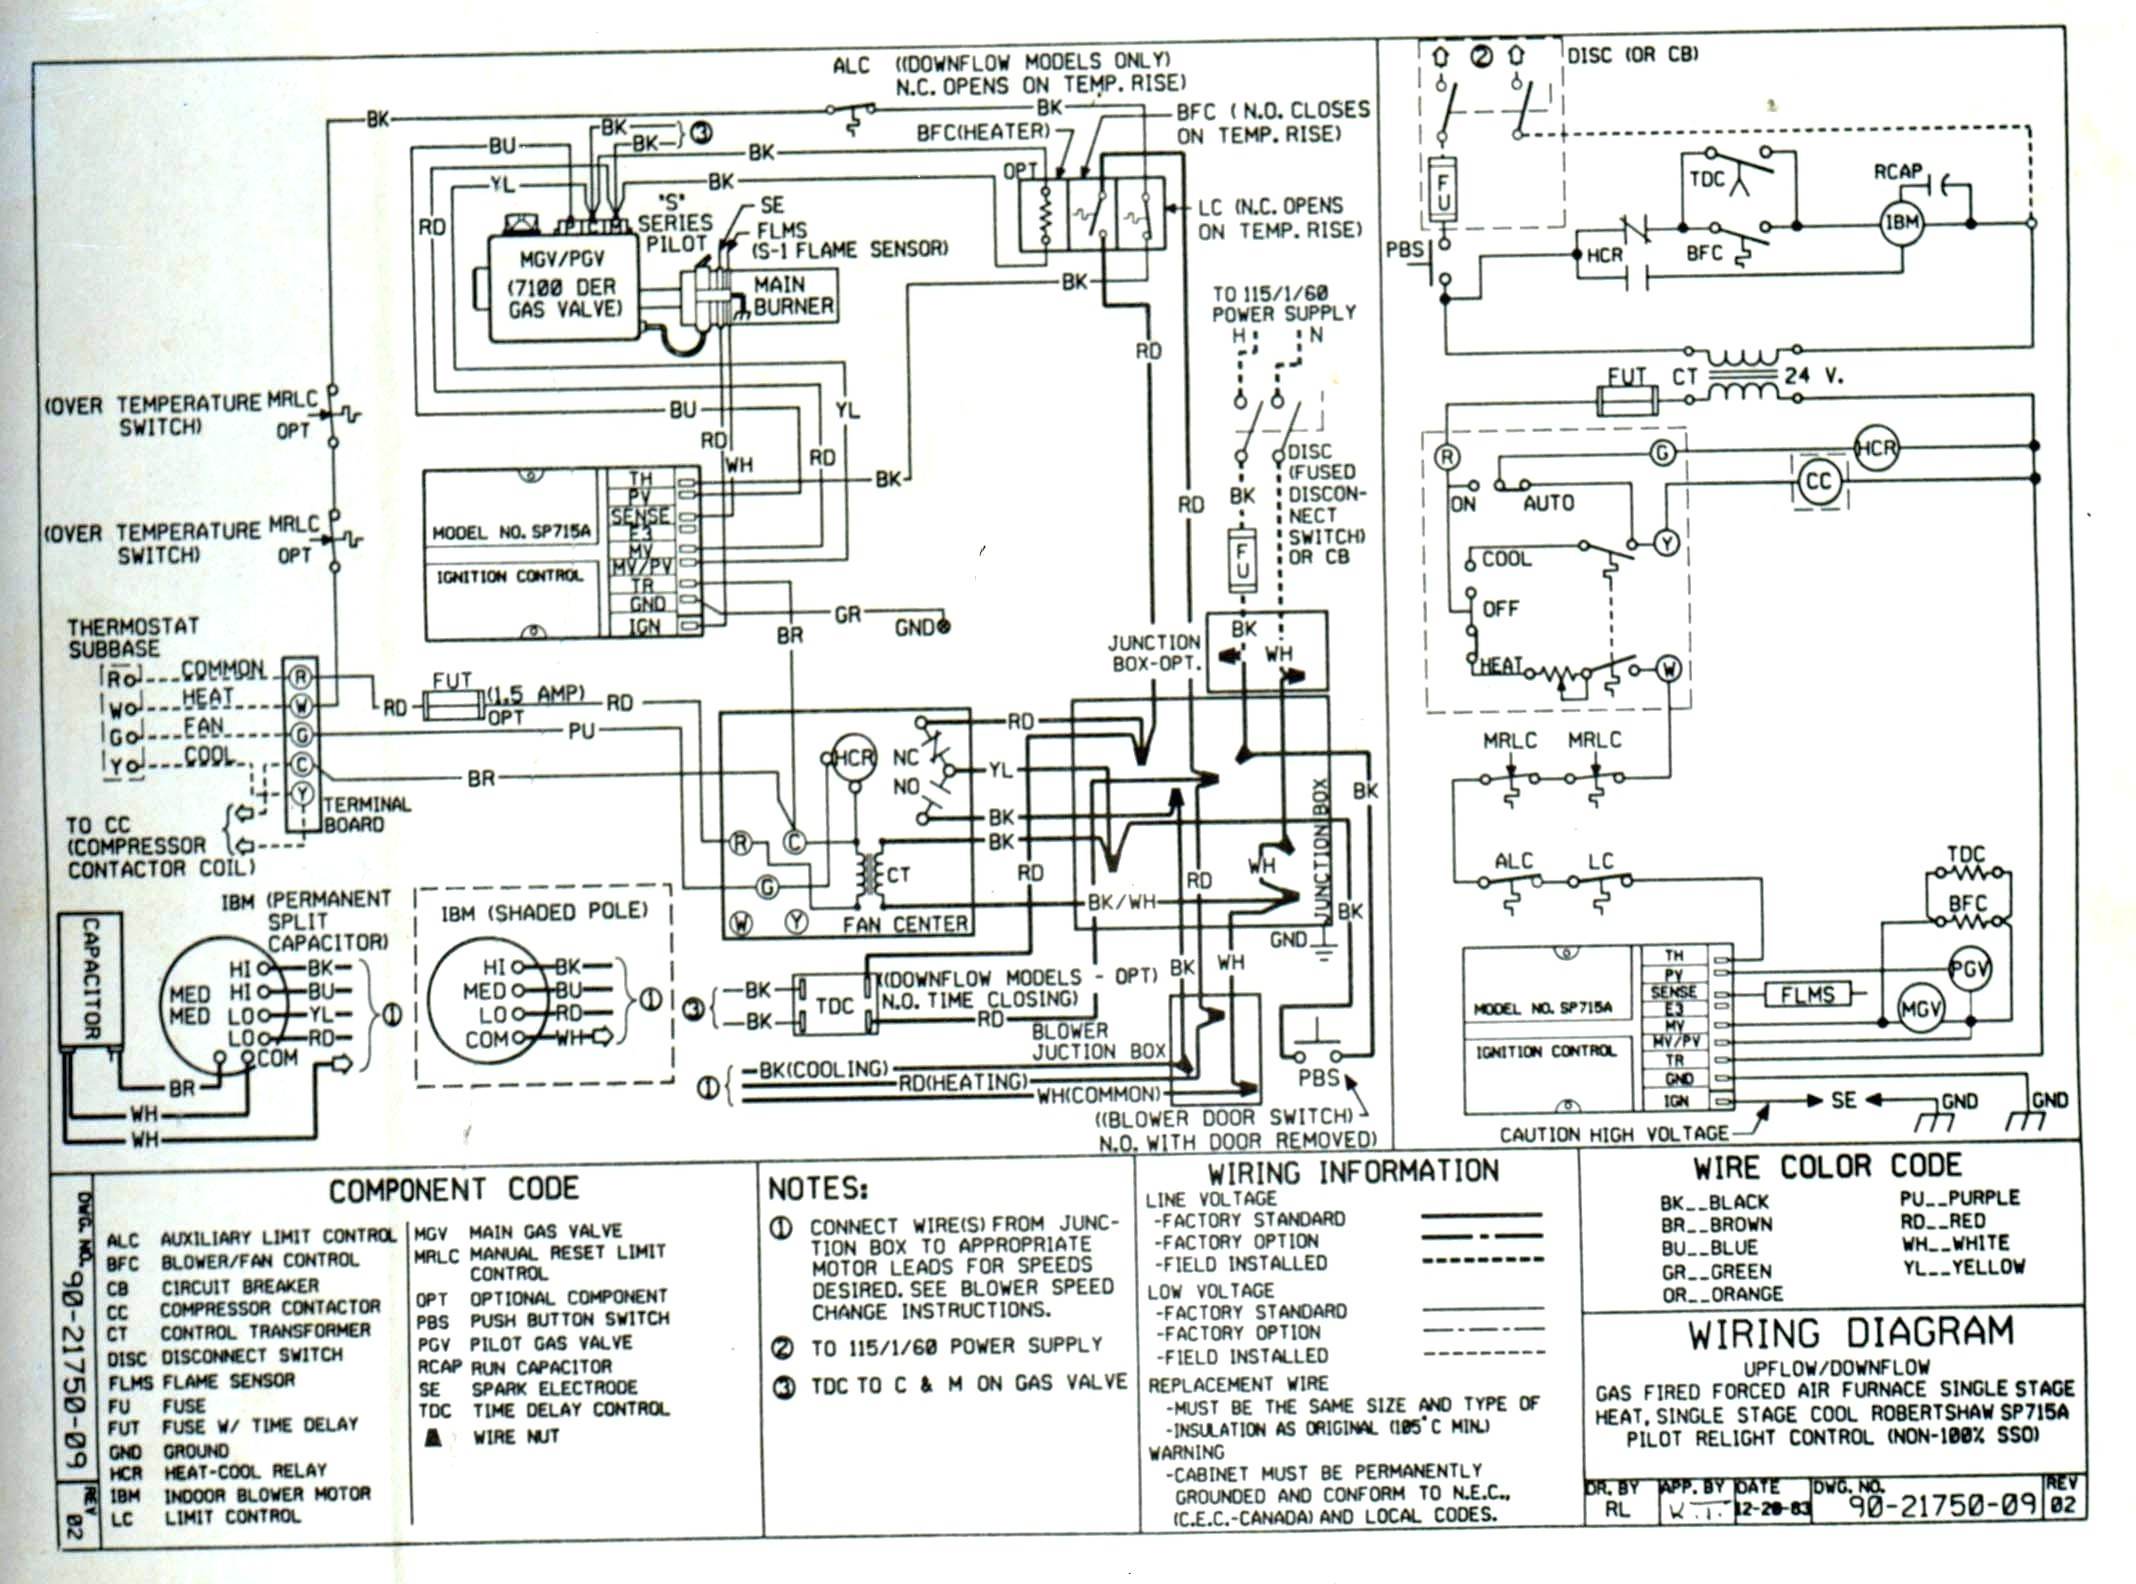 Gas Pump Diagram Goodman Heat Pump Package Unit Wiring Diagram Sample Of Gas Pump Diagram Hvac Transformer Wiring Diagram Save Ac Transformer Wiring Diagram